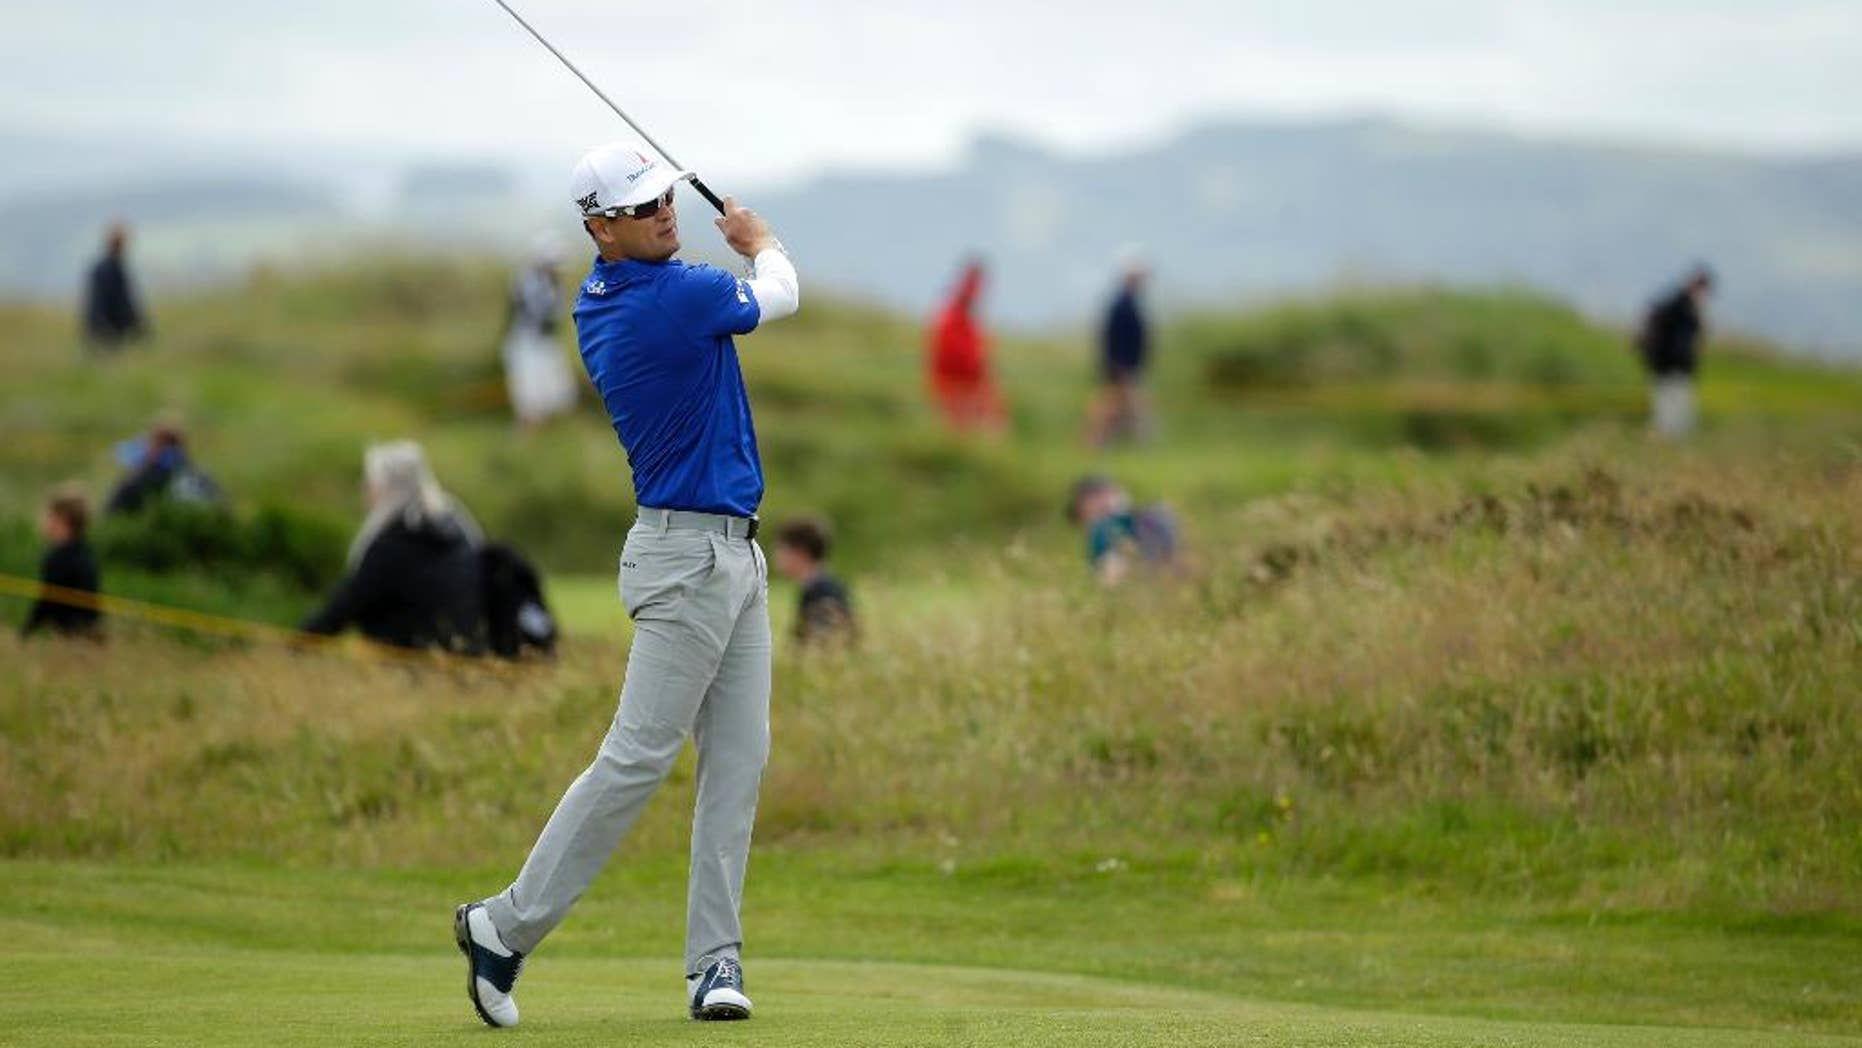 Zach Johnson of the United States plays the 15th fairway during a practice round ahead of the British Open Golf Championship at the Royal Troon Golf Club in Troon, Scotland, Wednesday, July 13, 2016.The British Open starts Thursday. (AP Photo/Matt Dunham)